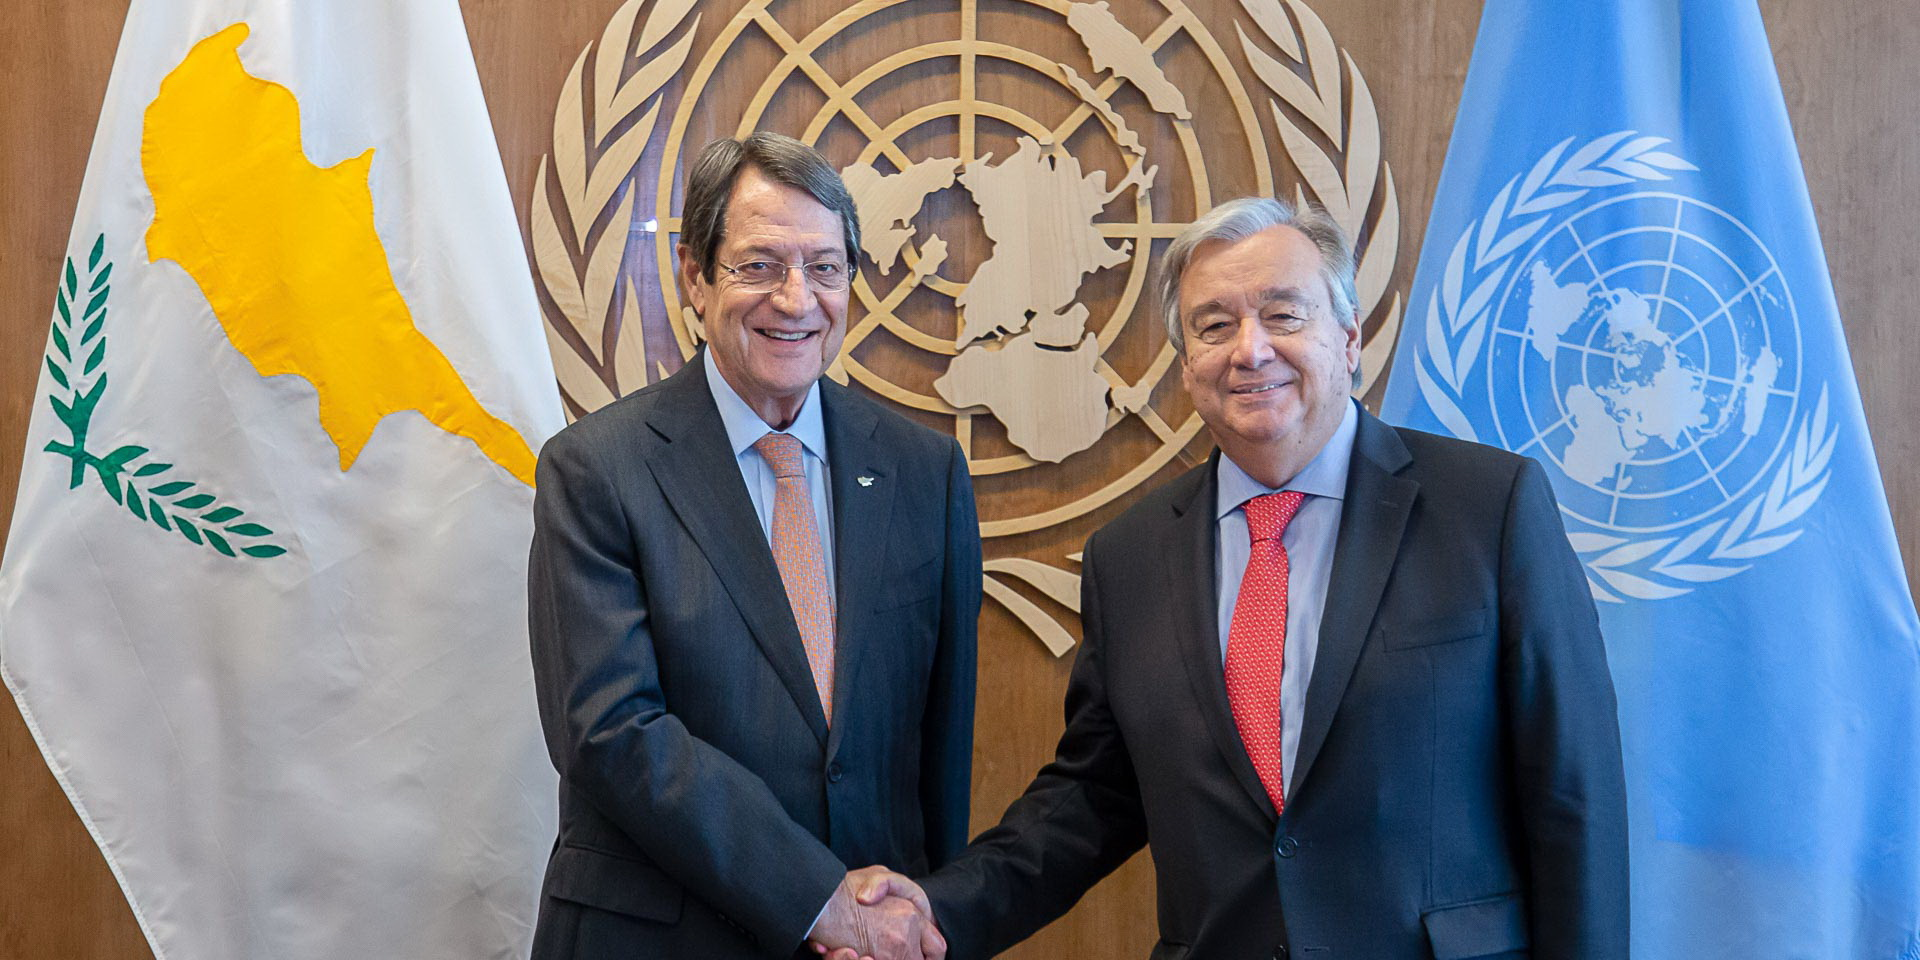 Anastasiades to Guterres: I am ready to restart the negotiations